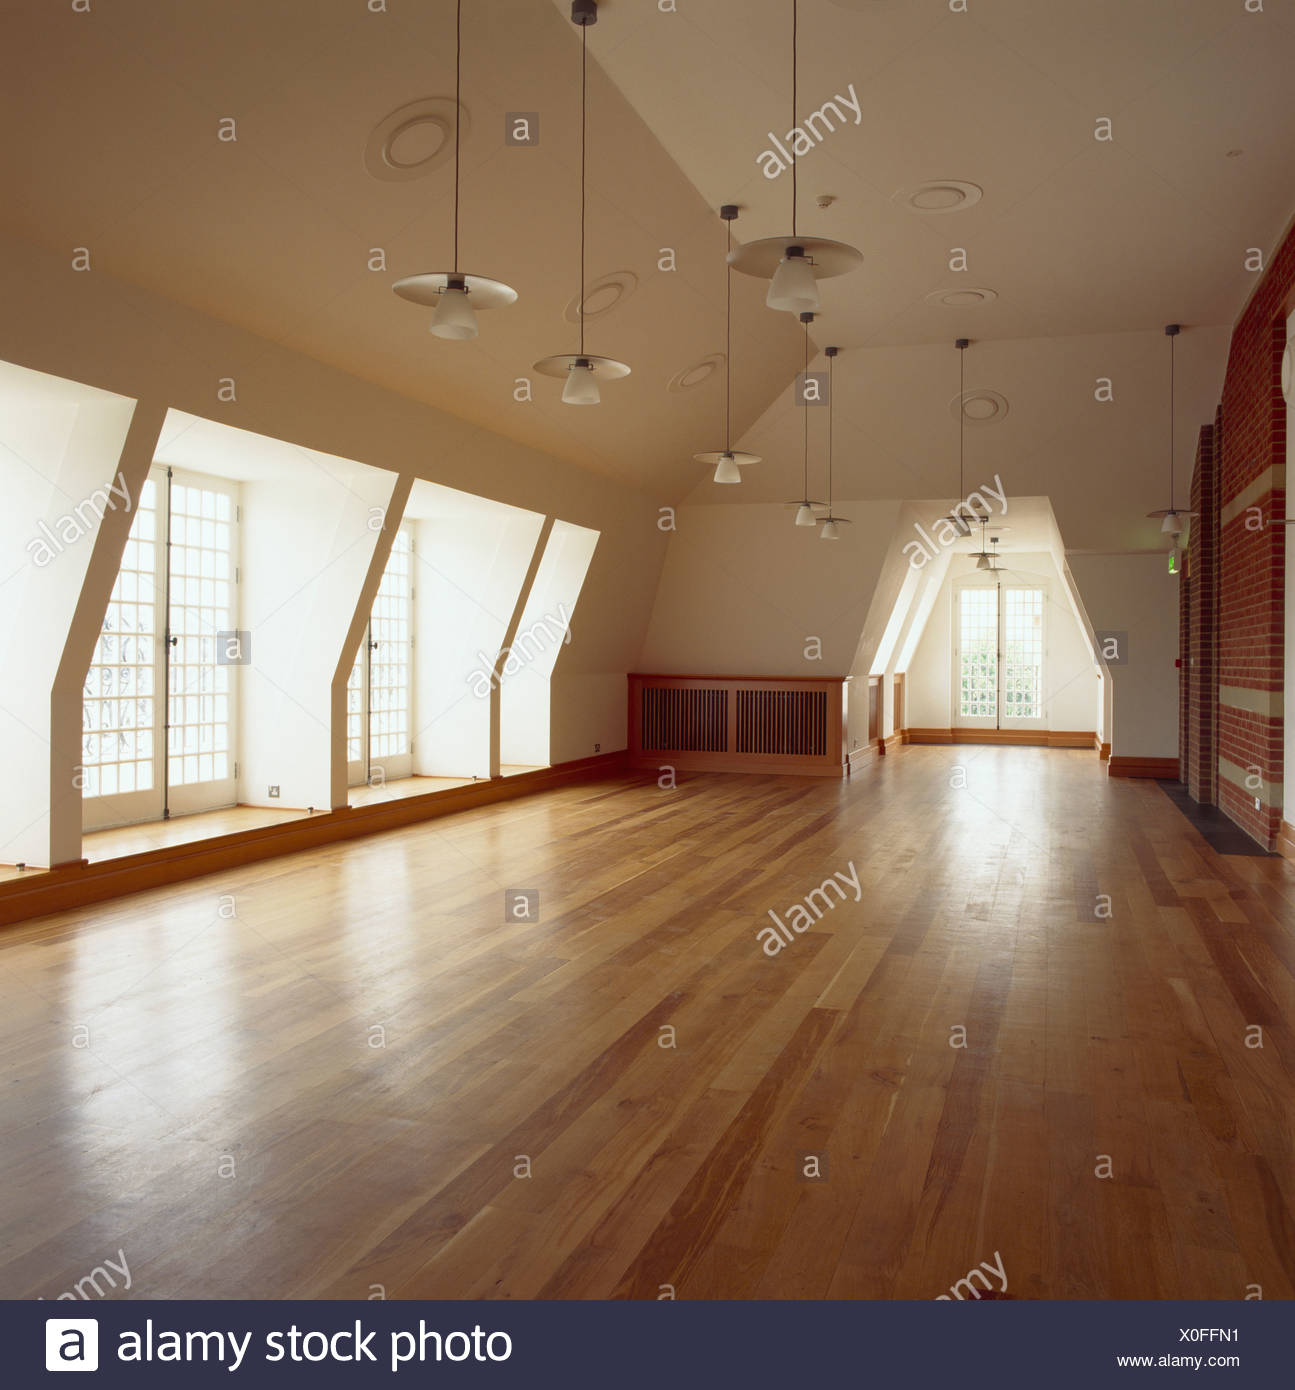 office space lighting lighting layout plan modern pendant lighting and wooden floor in empty commercial office space loft conversion